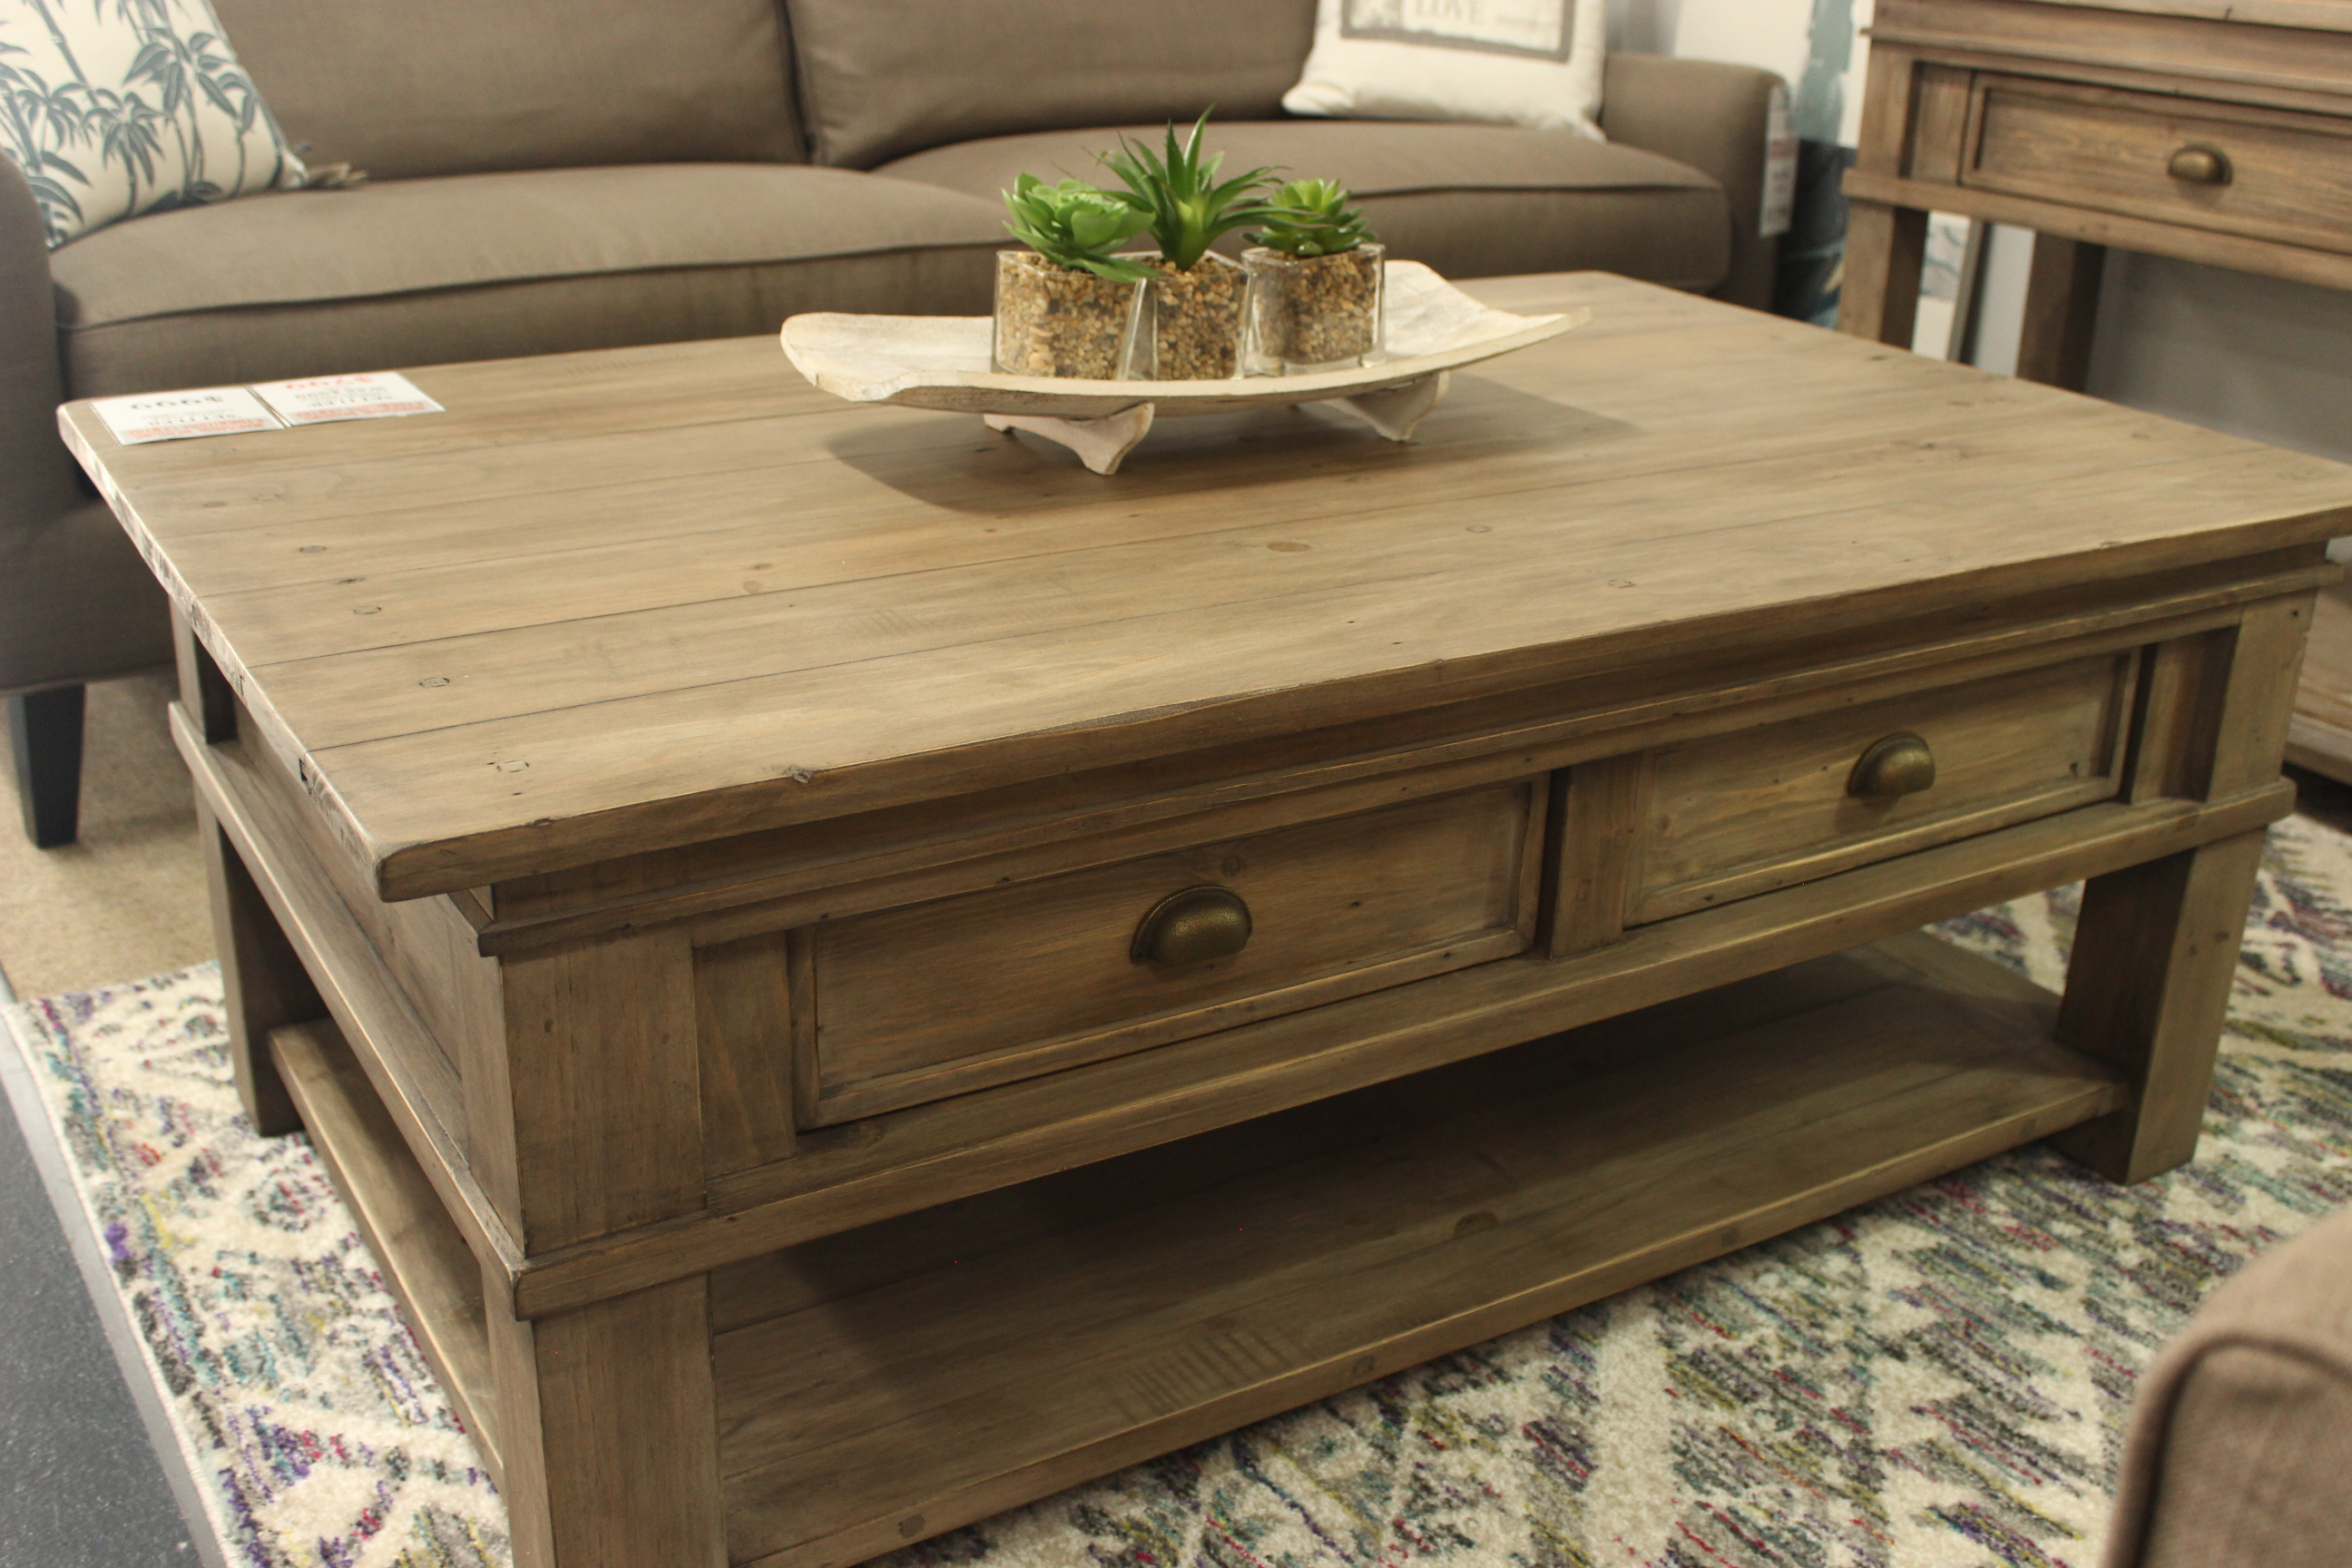 Settler coffee table : IMG2588 from homeideas.cloud size 2592 x 1728 jpeg 2001kB